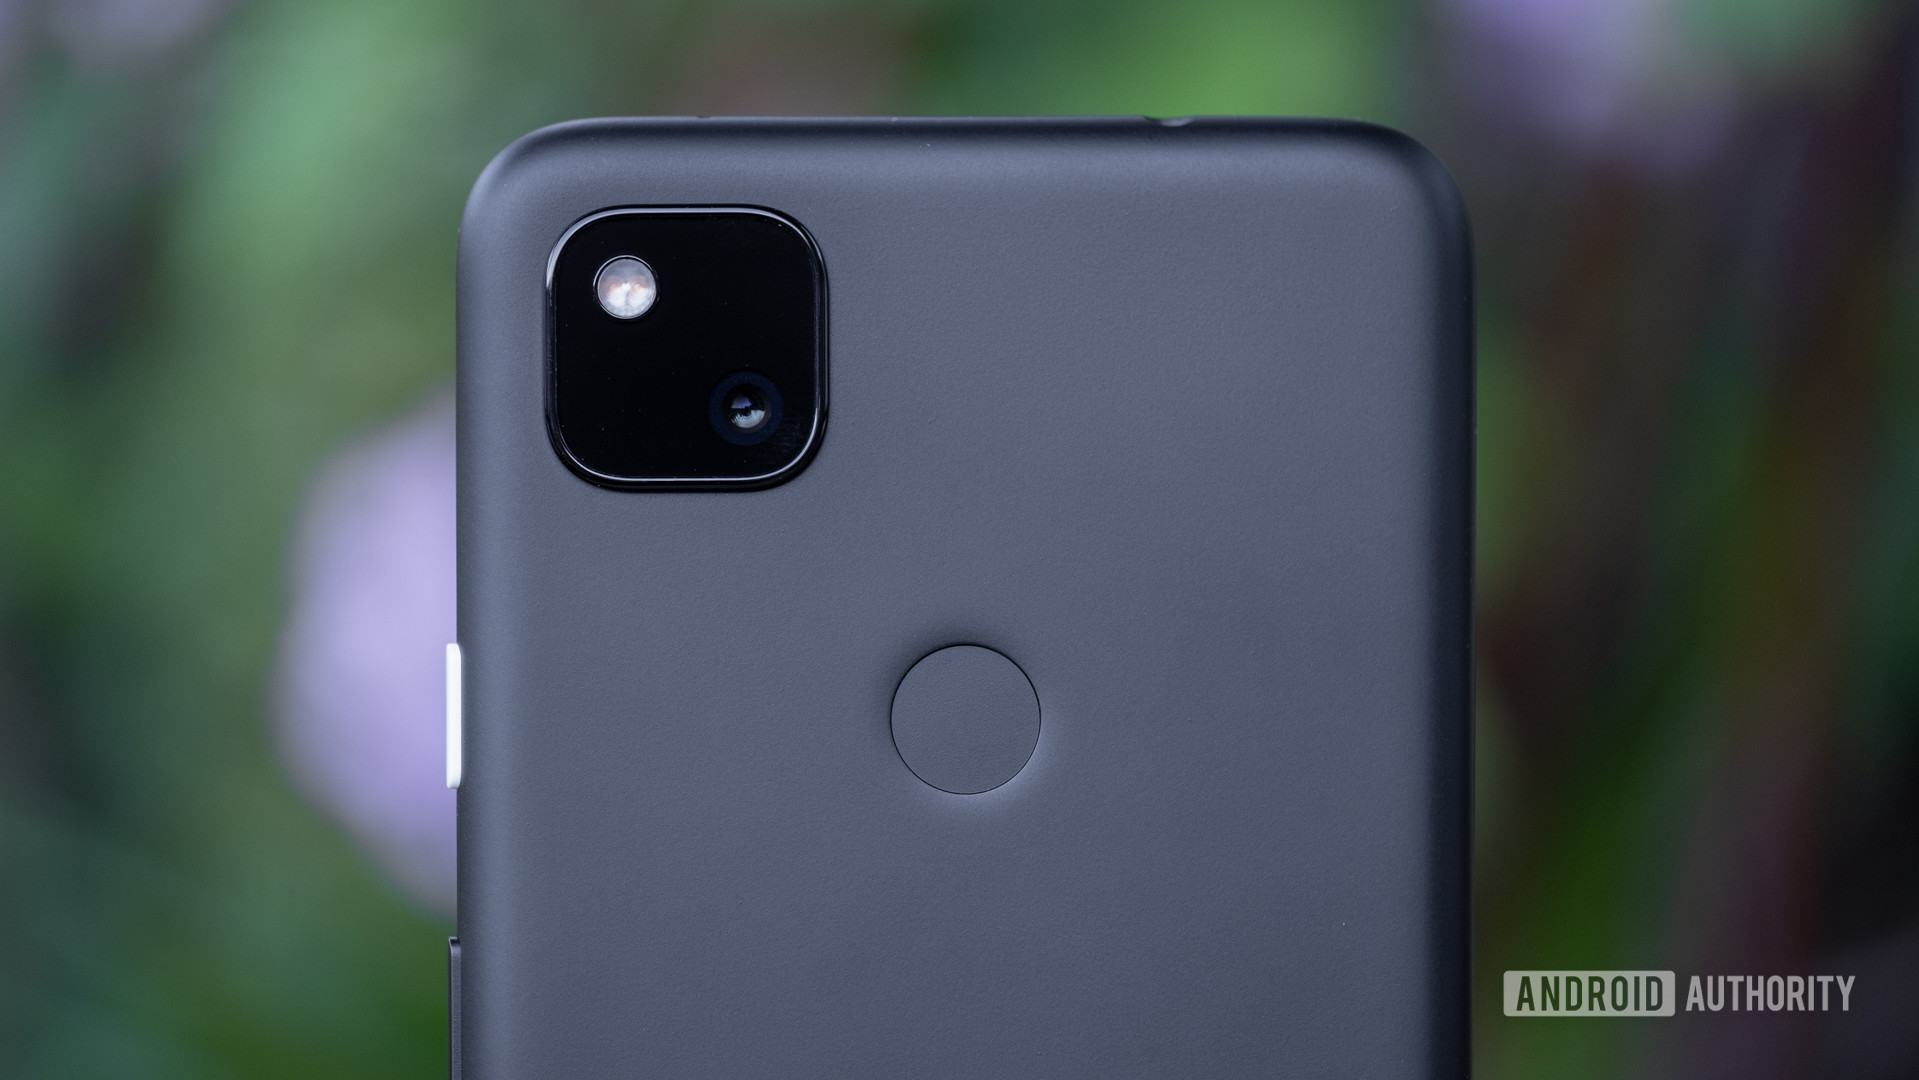 Google Pixel 4a price, release date, deals, and more - Android Authority